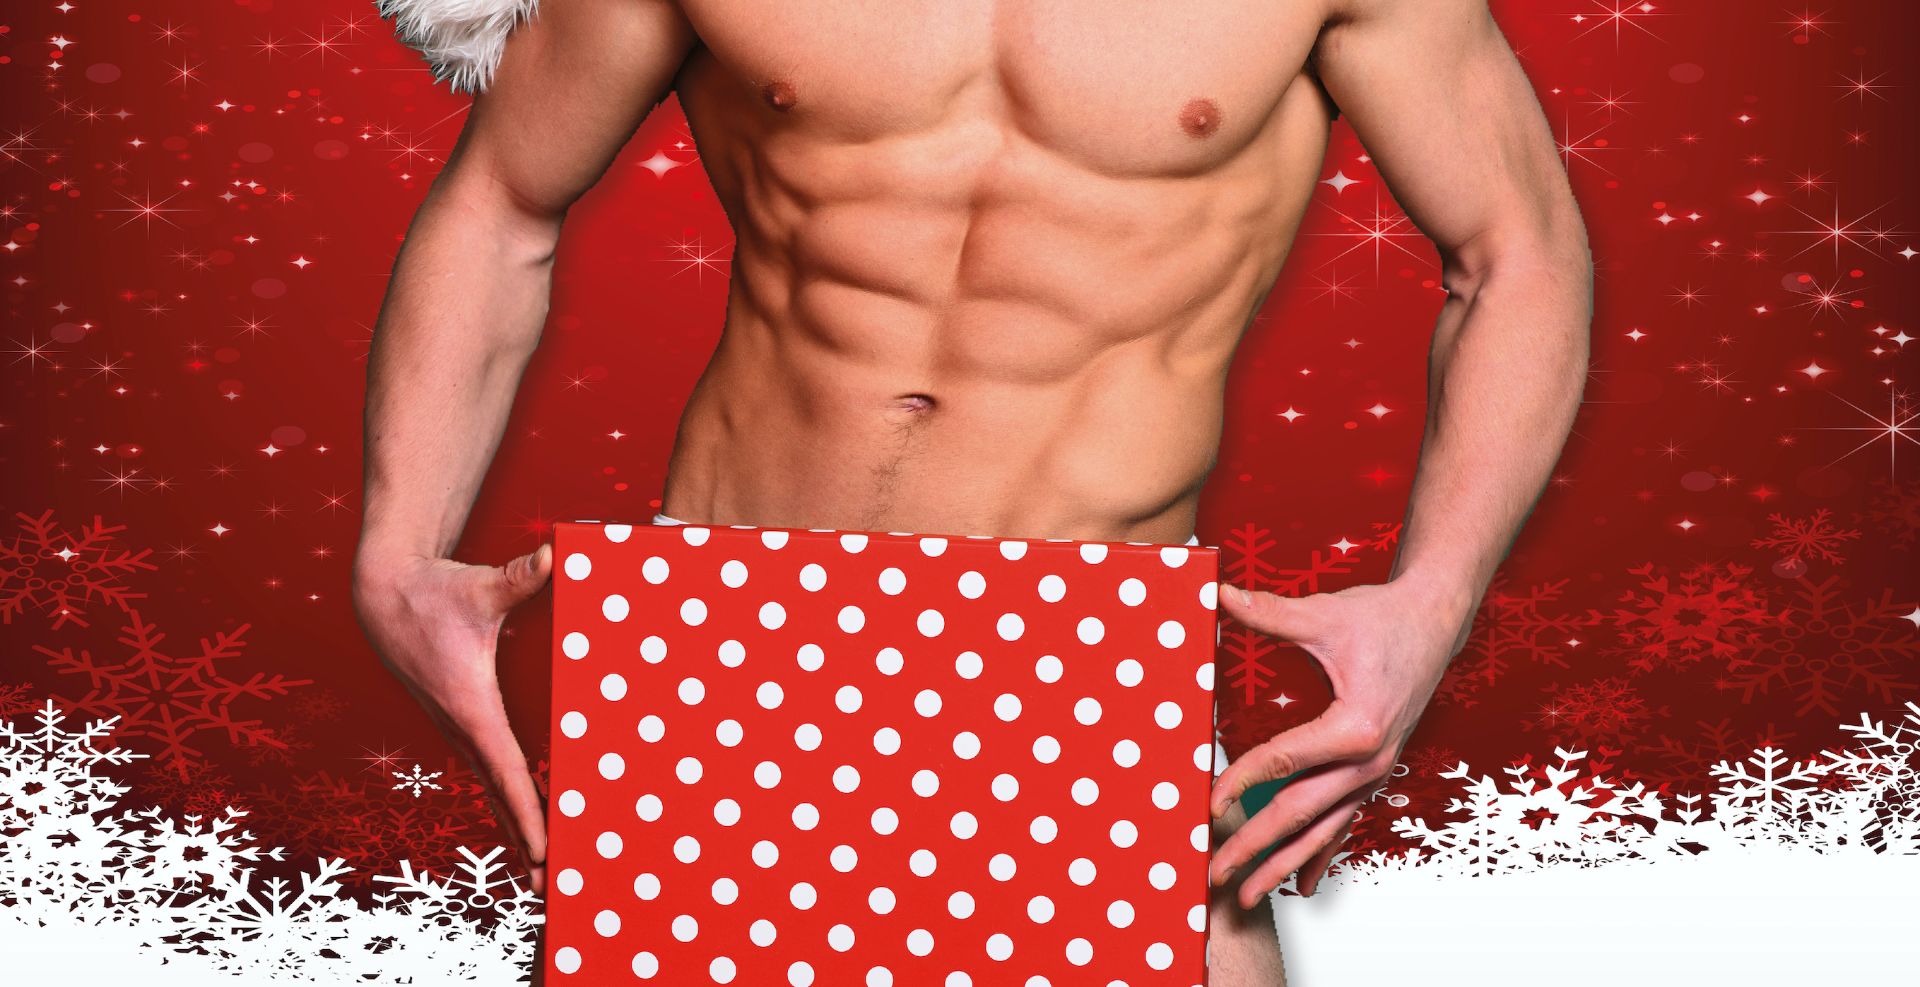 Boy Toy Naughty Nights Bottomless Dinner - Christmas Special Dec 11th!